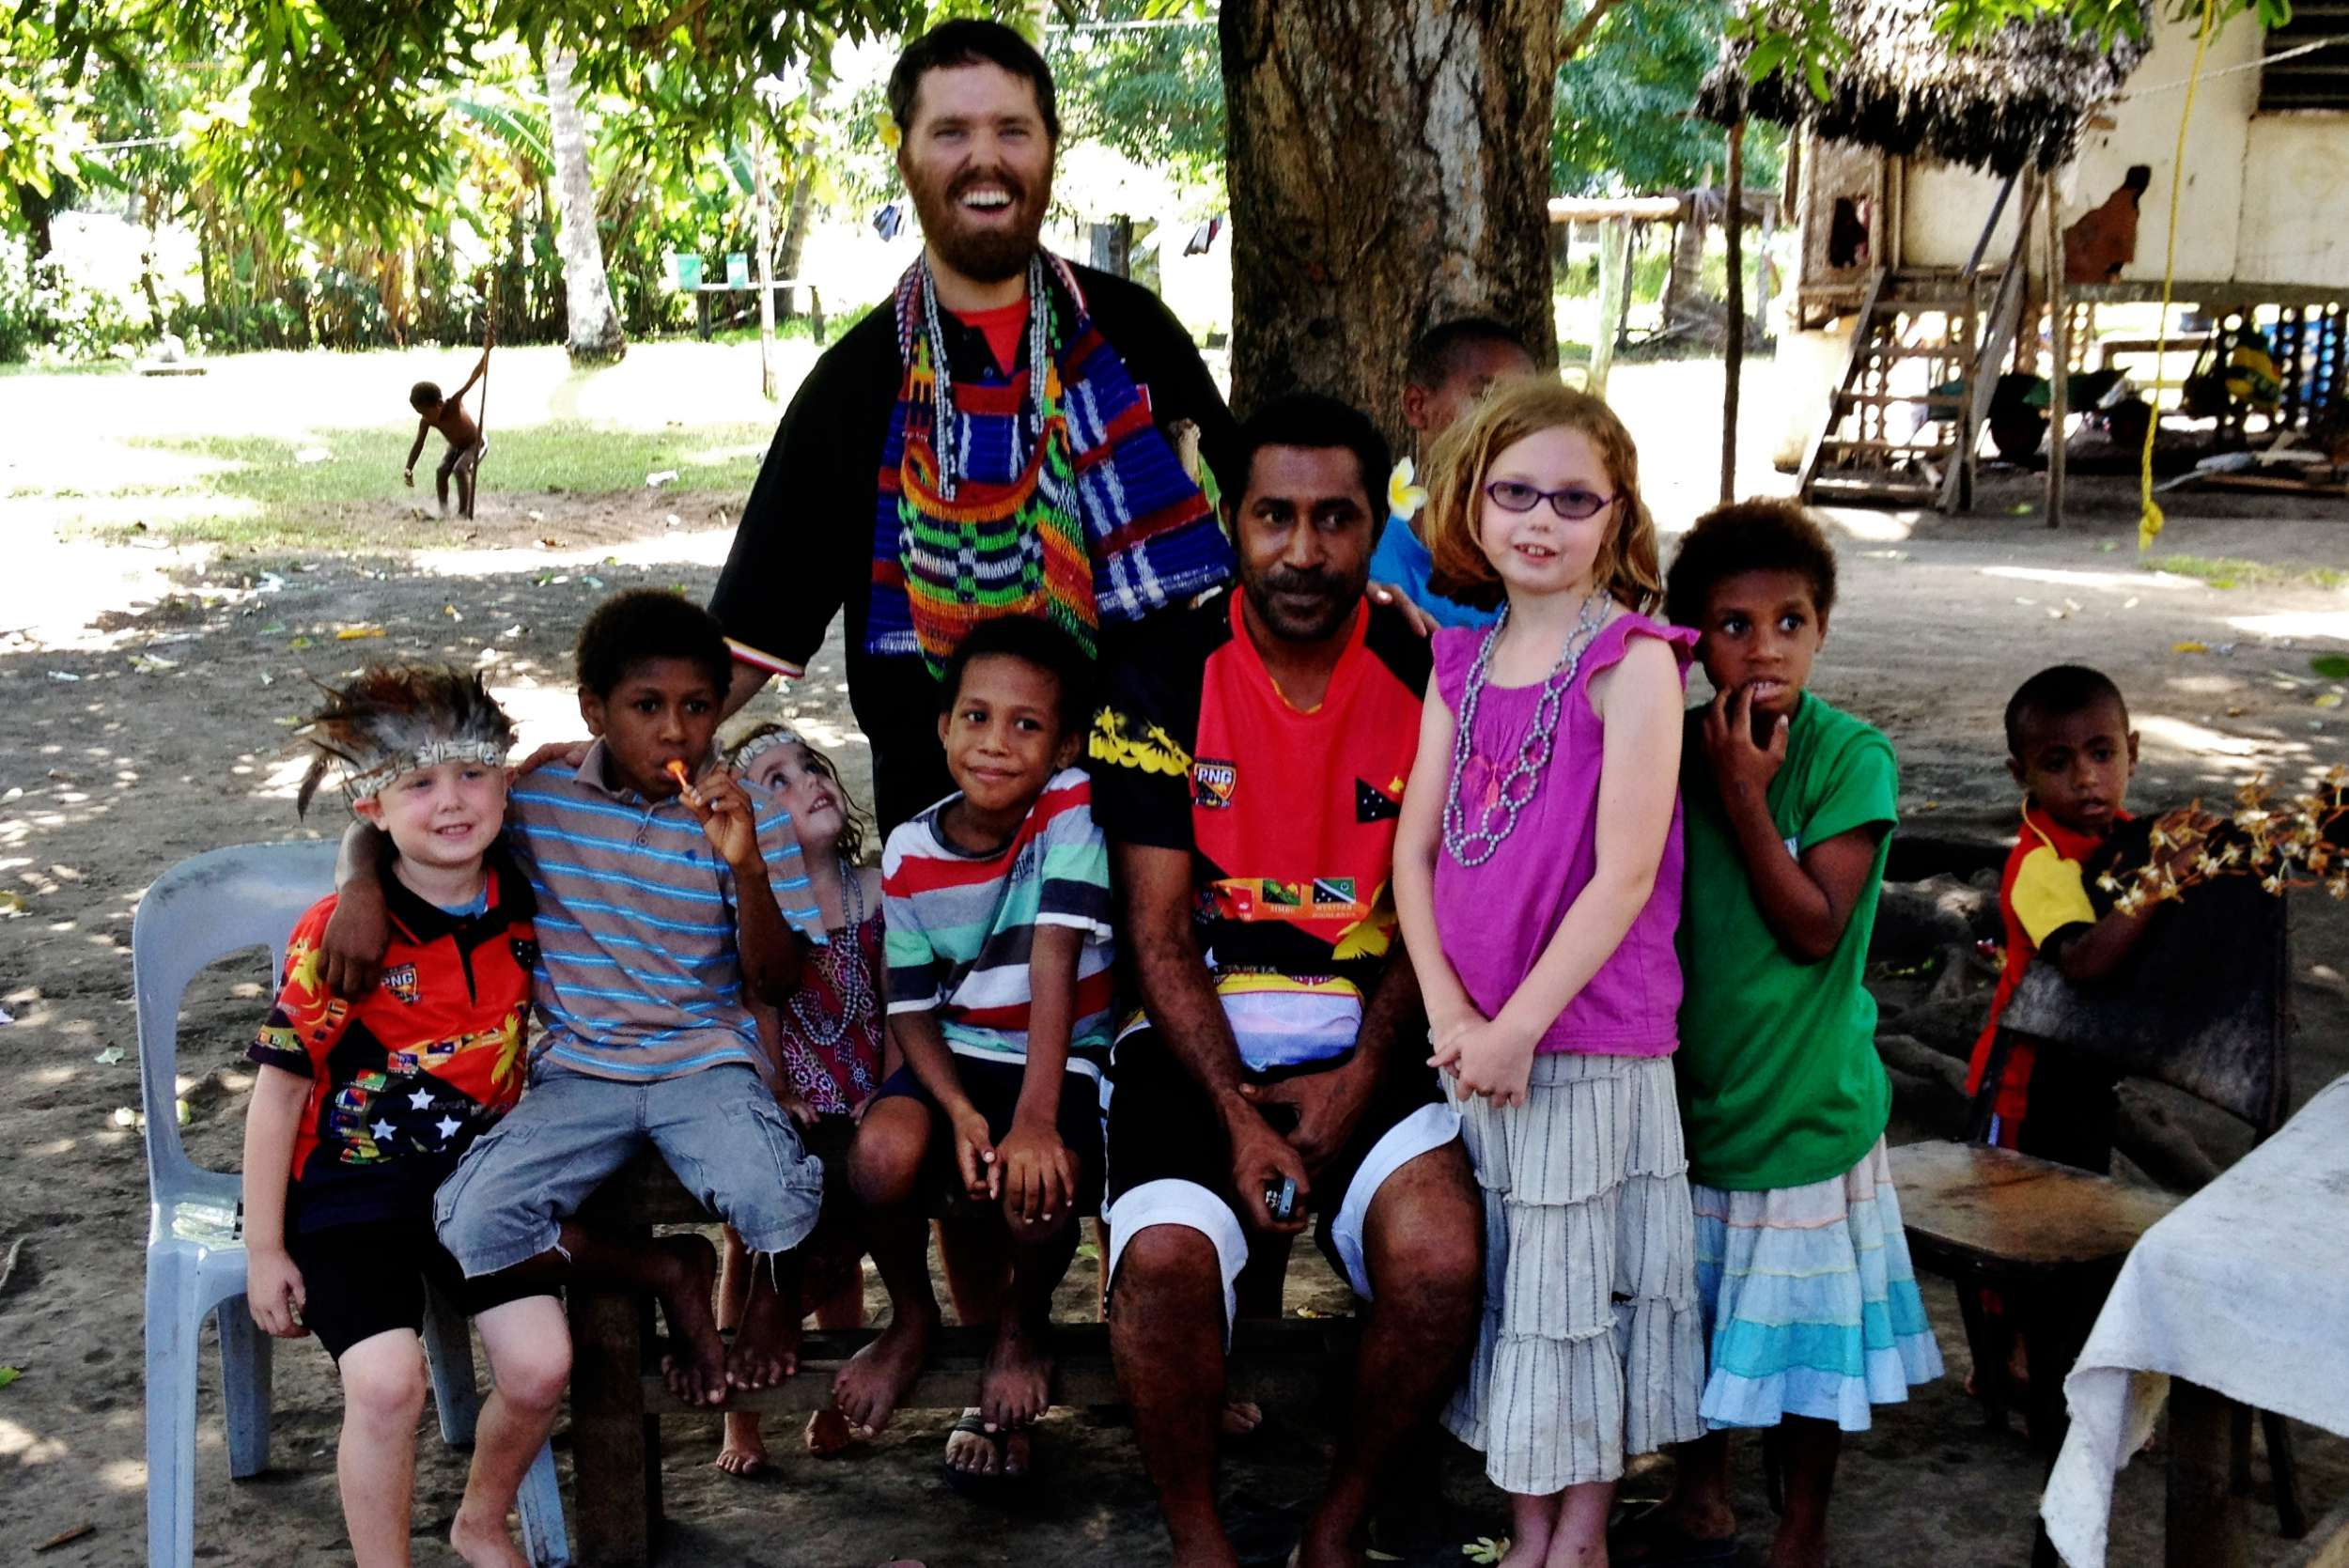 John with Ariki and many others. Ariki and his family were close family friends and he was alsoone of the teachers at the primary school with Suzanne.